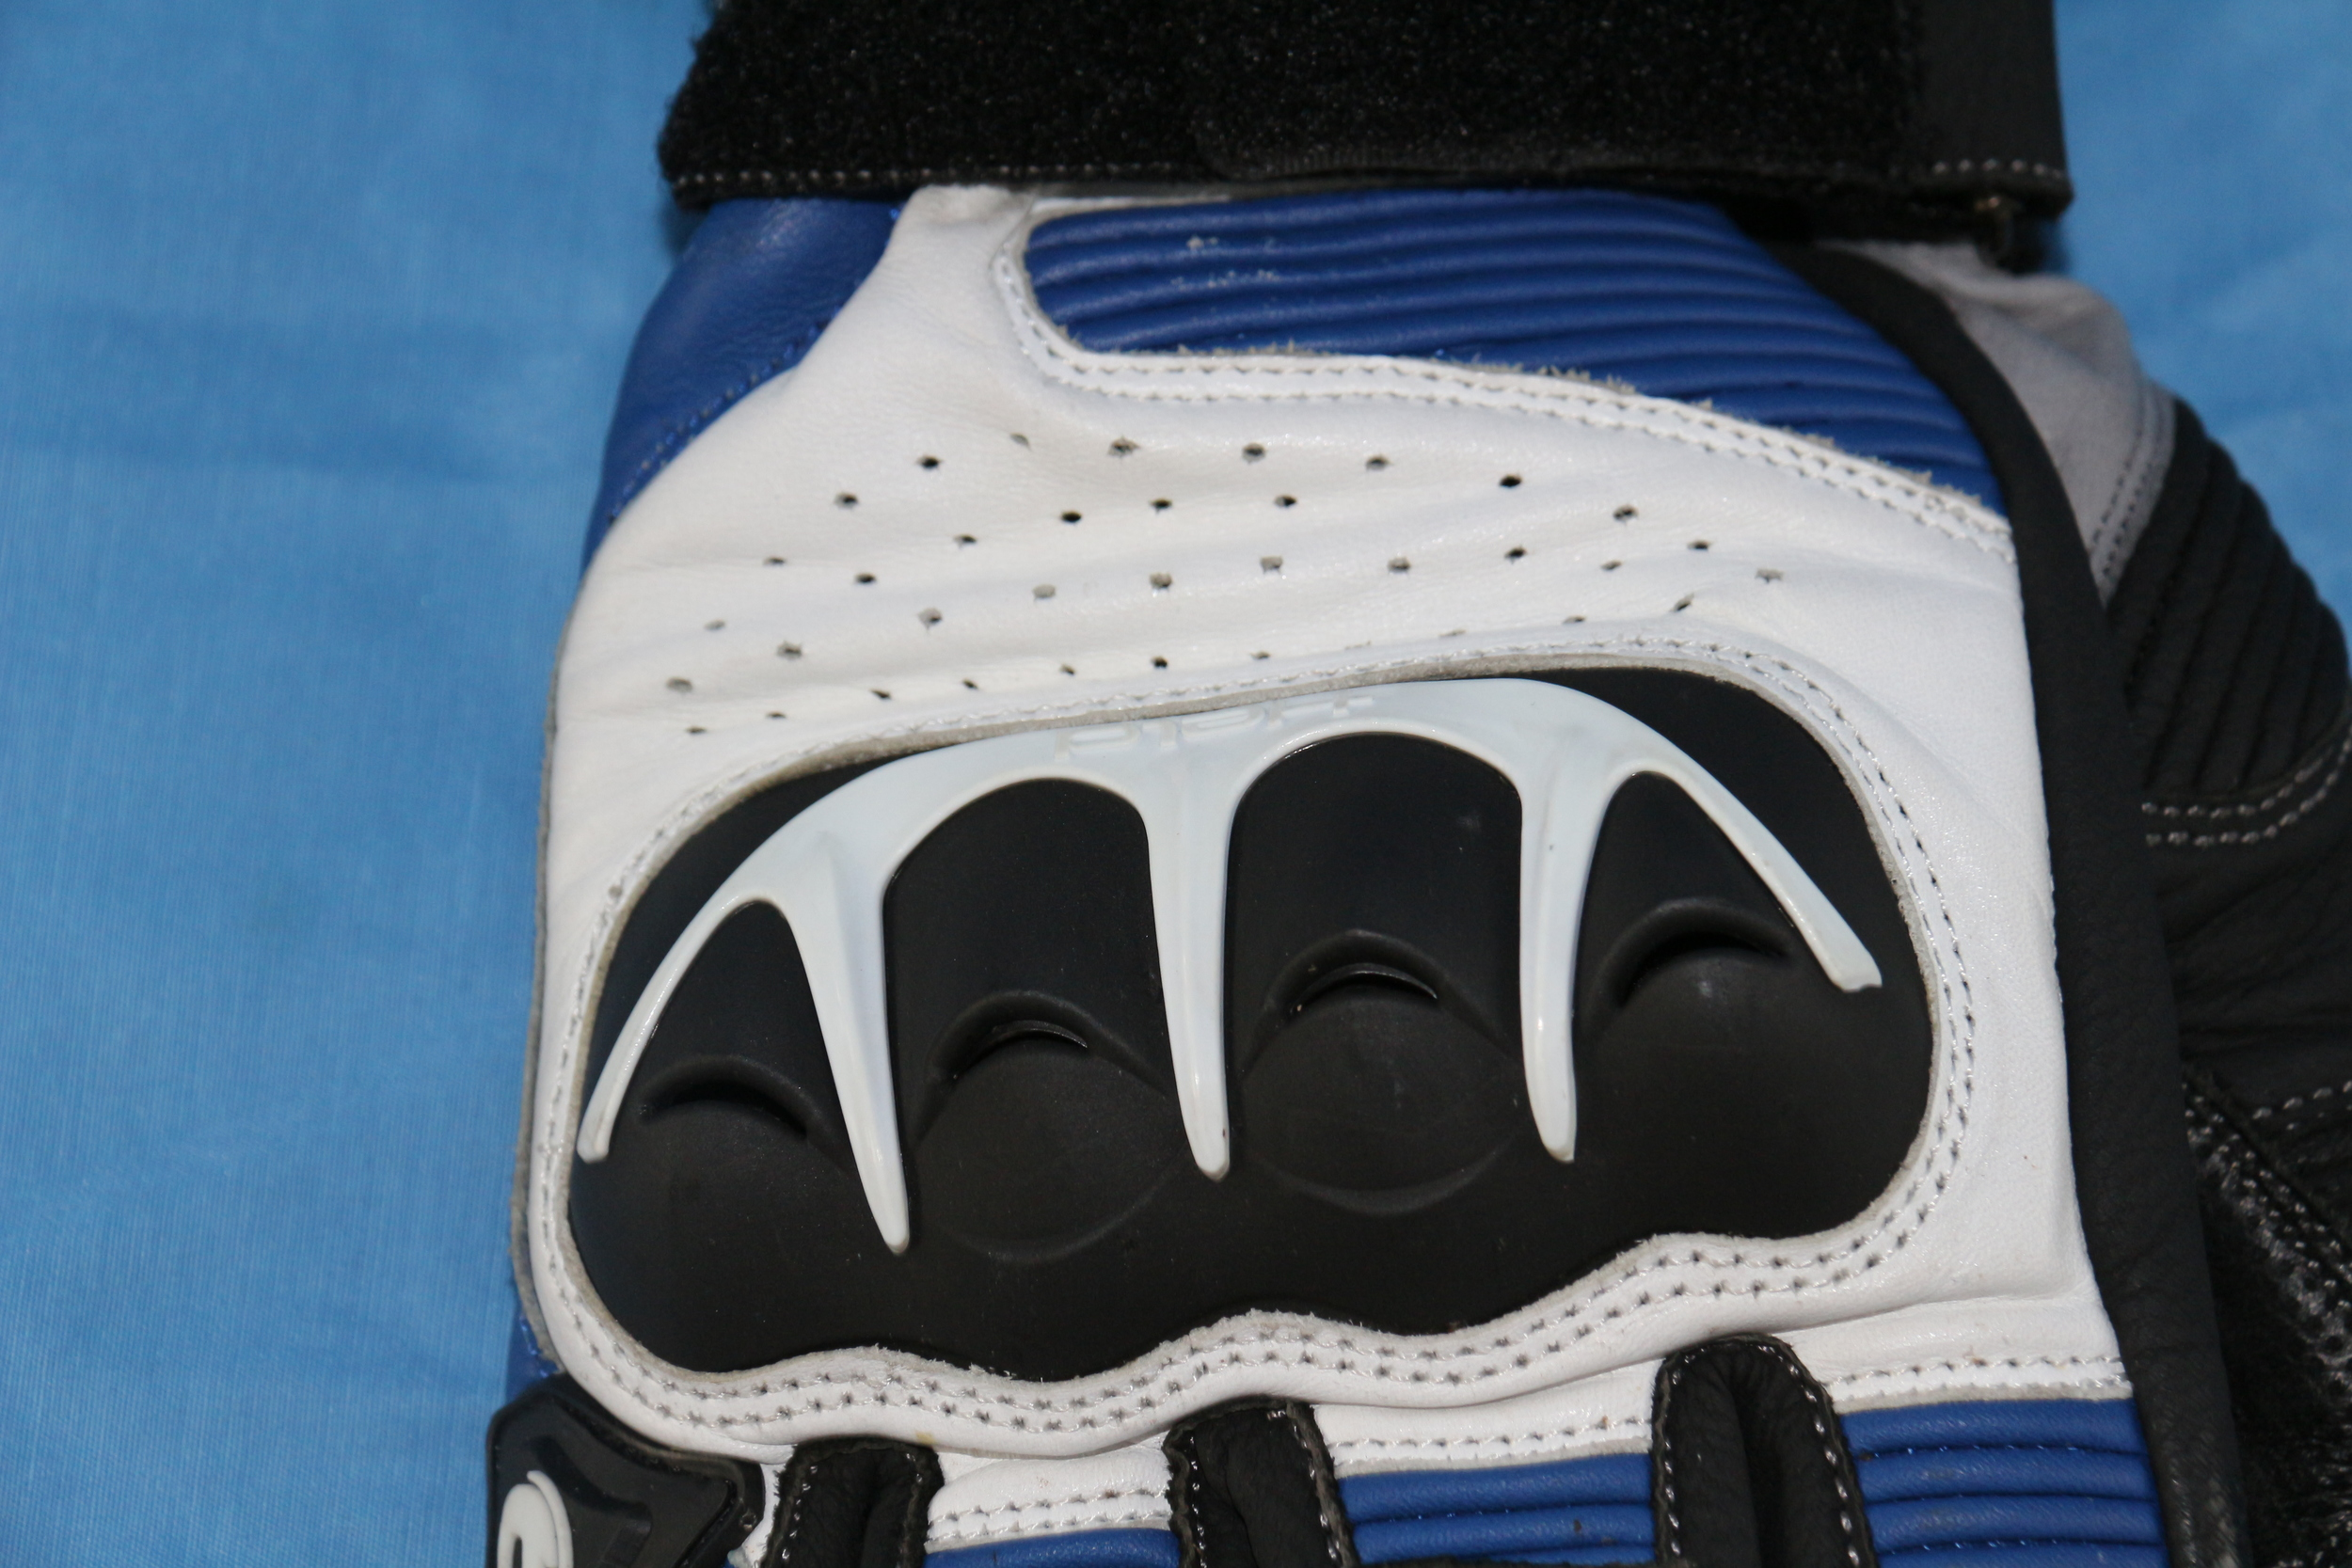 Knuckle Protector and Perforation